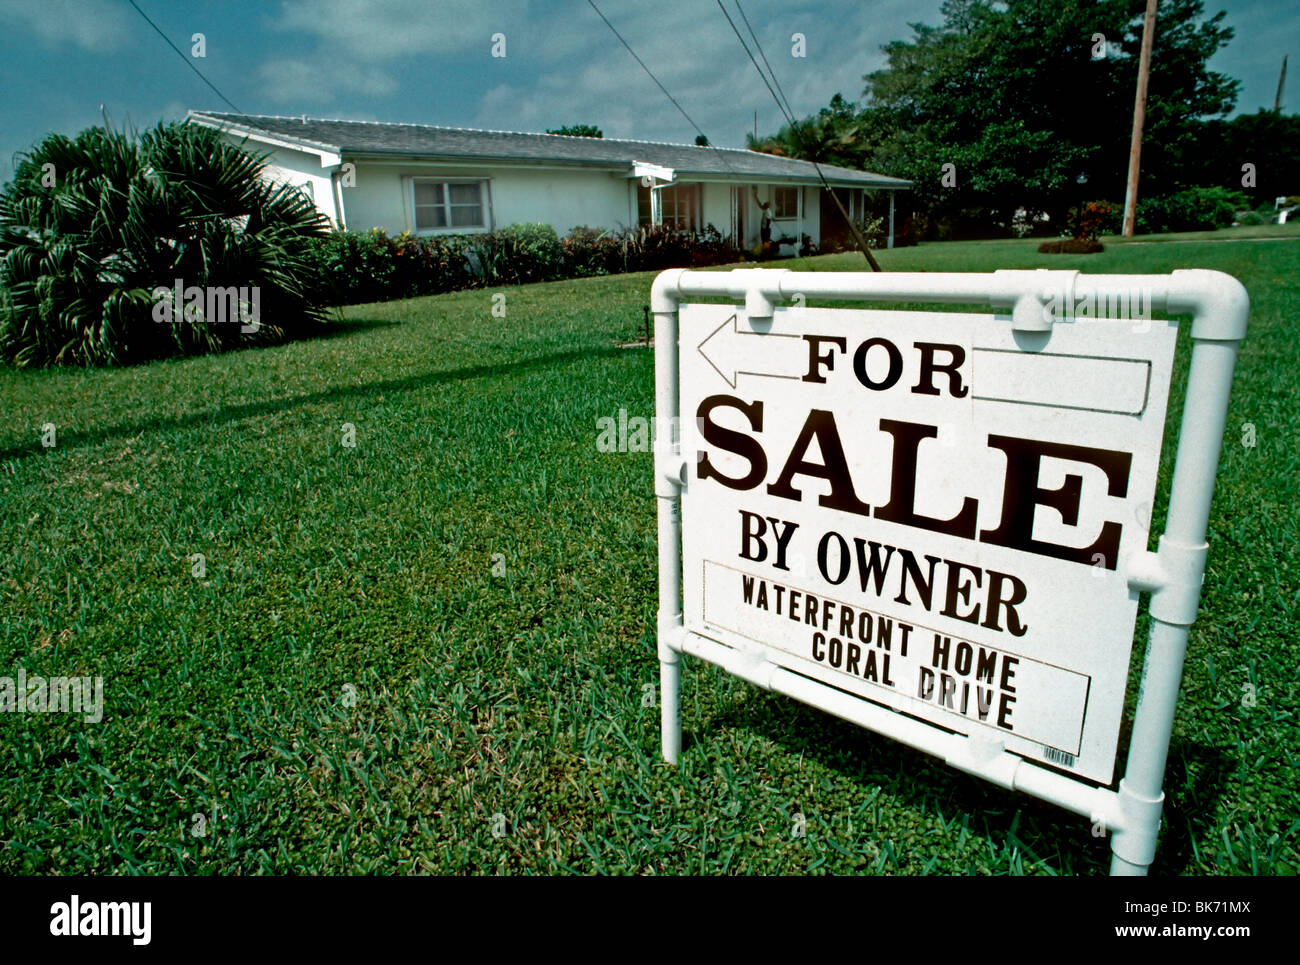 "West Palm Beach, Florida, U.S.A. - Single Family House, with ""For Sale Sign"", in Front. Stock Photo"